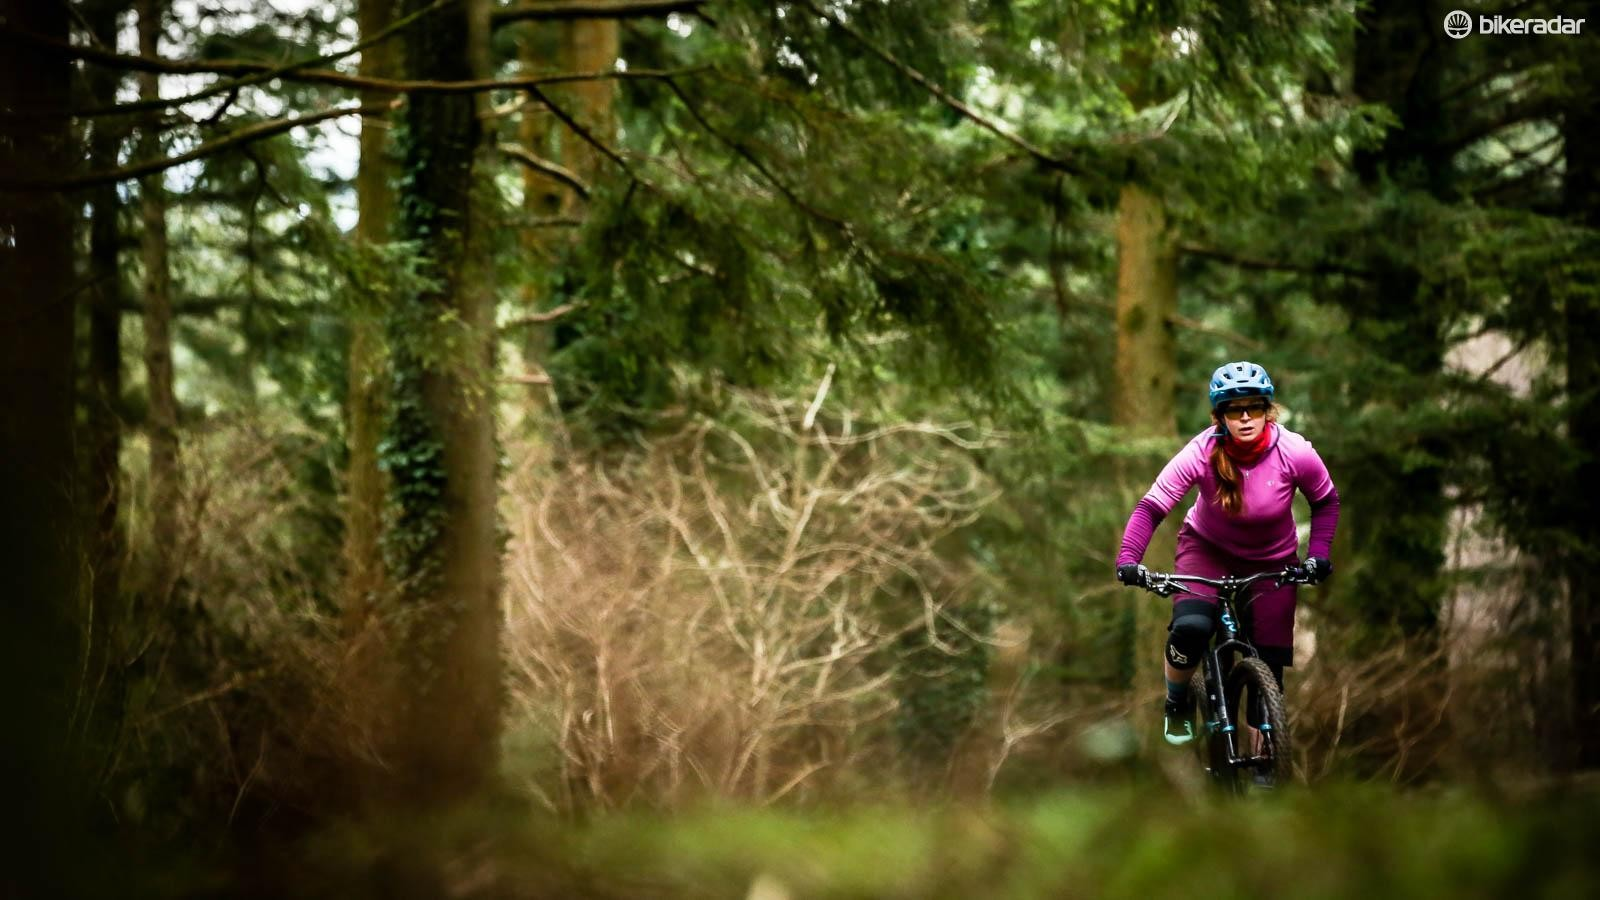 Our women's editor Aoife took the Liv Pique out to a trail centre in Wales